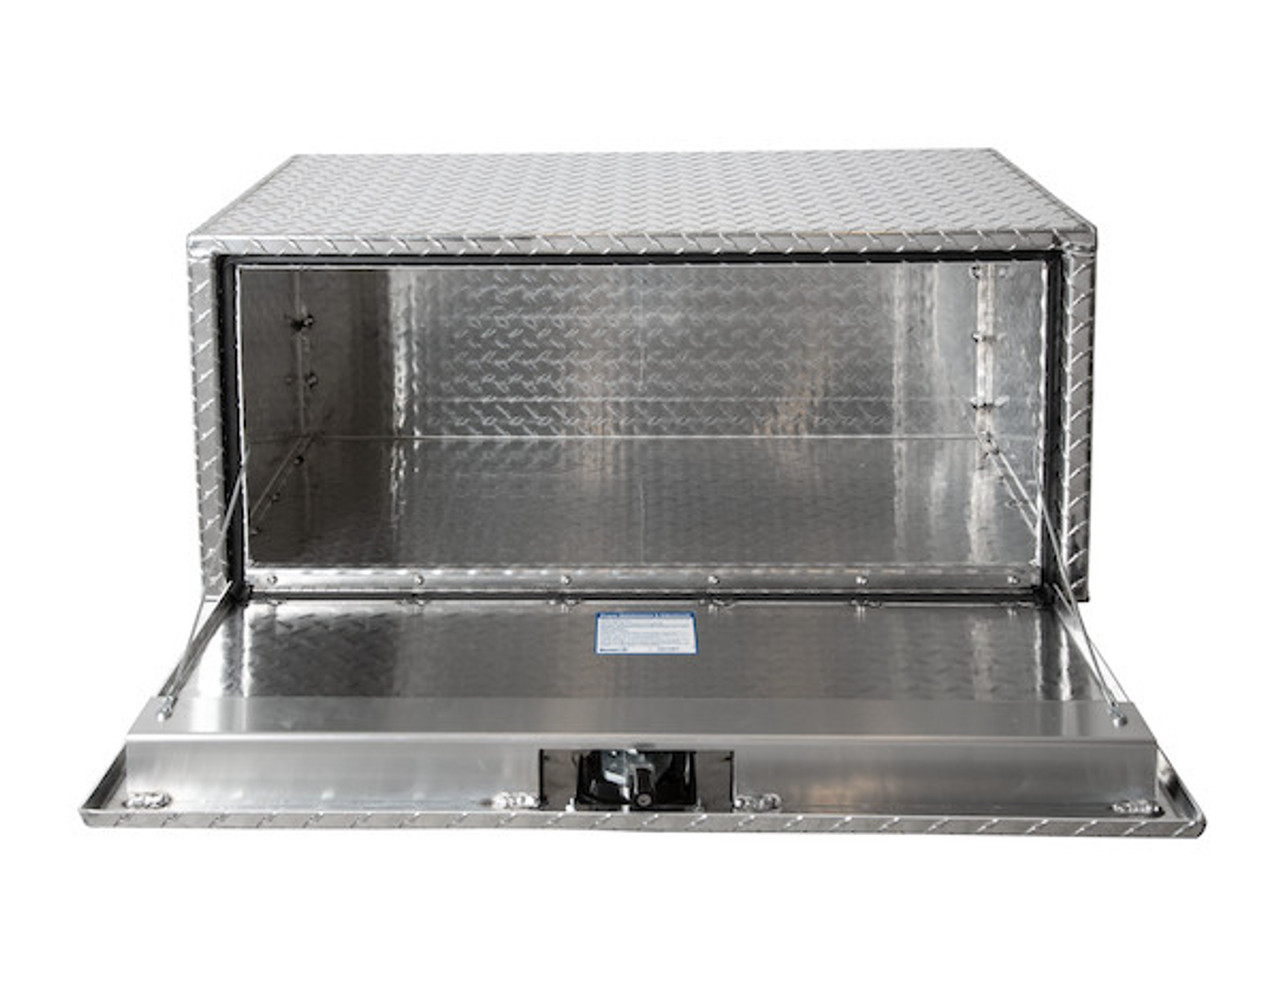 "1705150 BUYERS PRODUCTS DIAMOND TREAD ALUMINUM UNDERBODY TRUCK TOOLBOX 14""HX12""DX24""W"